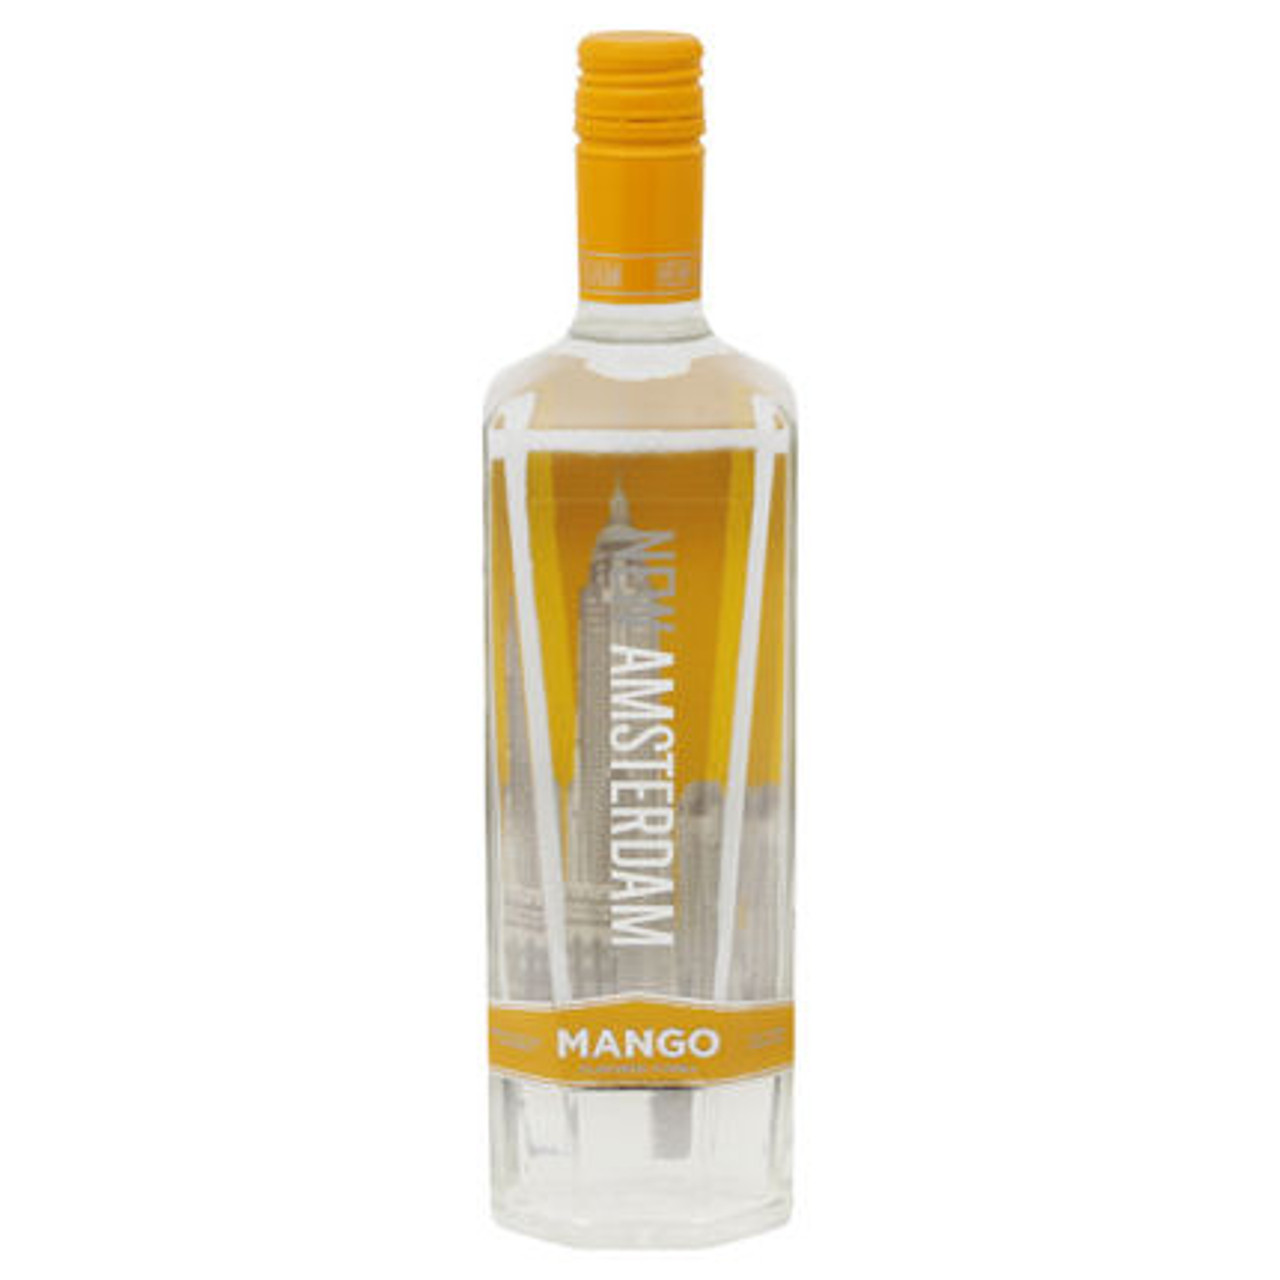 New Amsterdam Mango Vodka 750ml